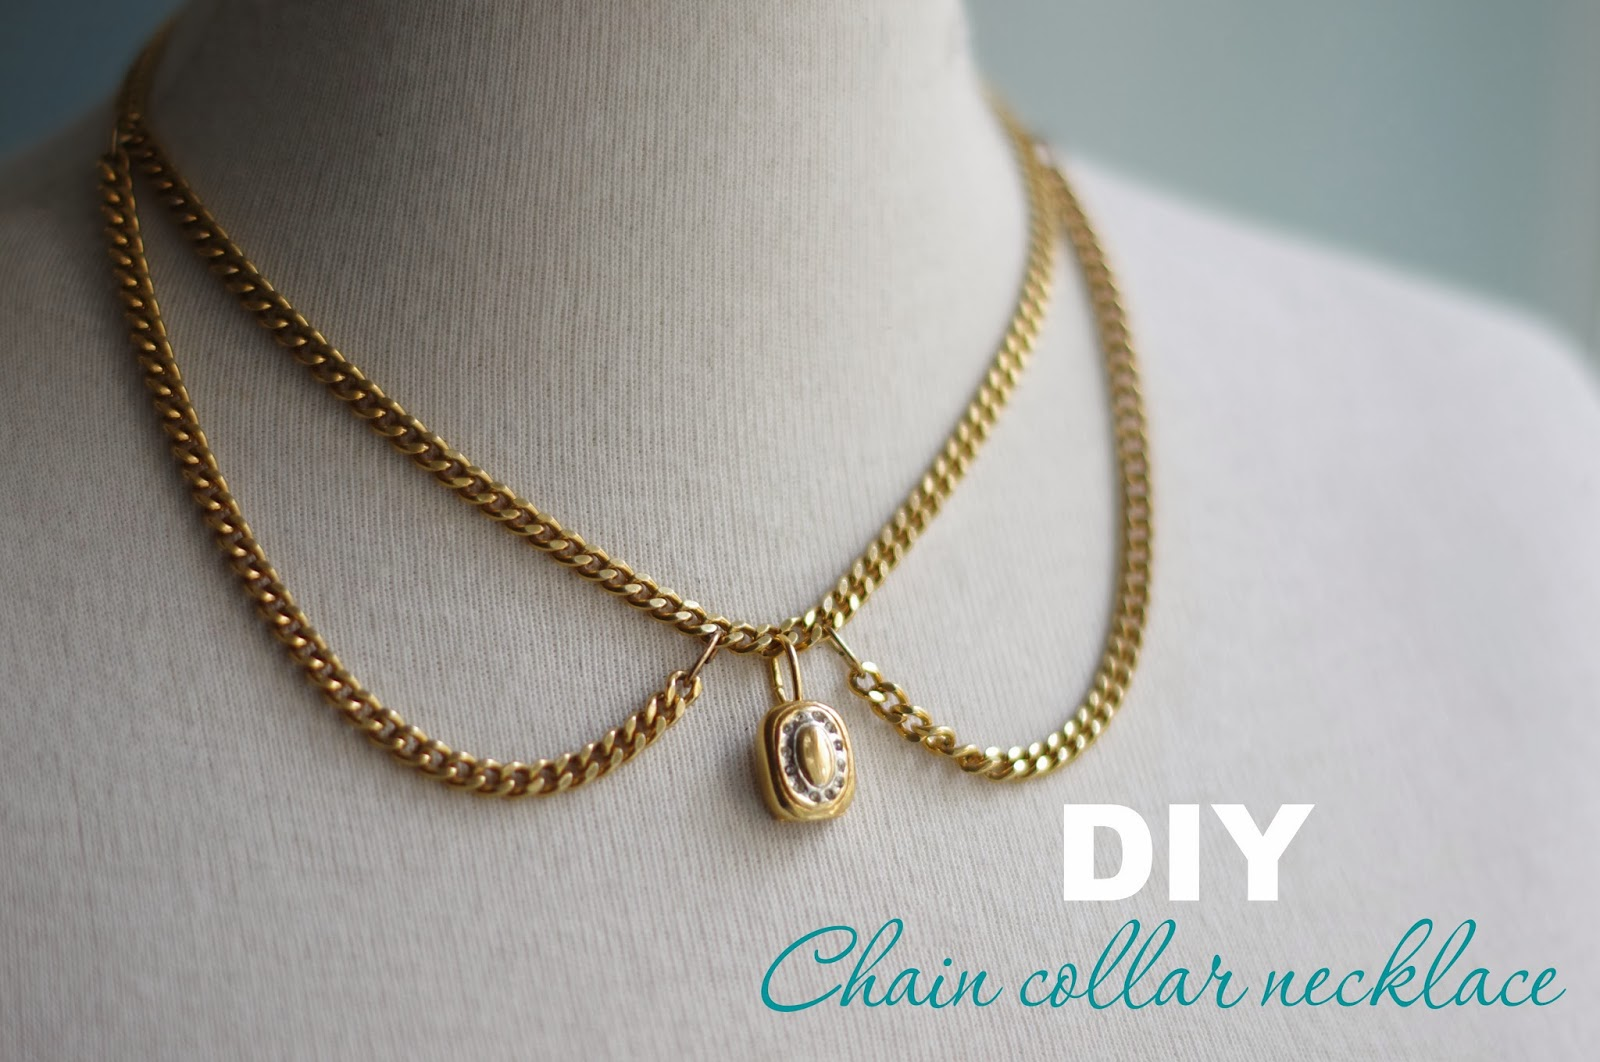 Well-liked DIY Chain necklace collar YQ99